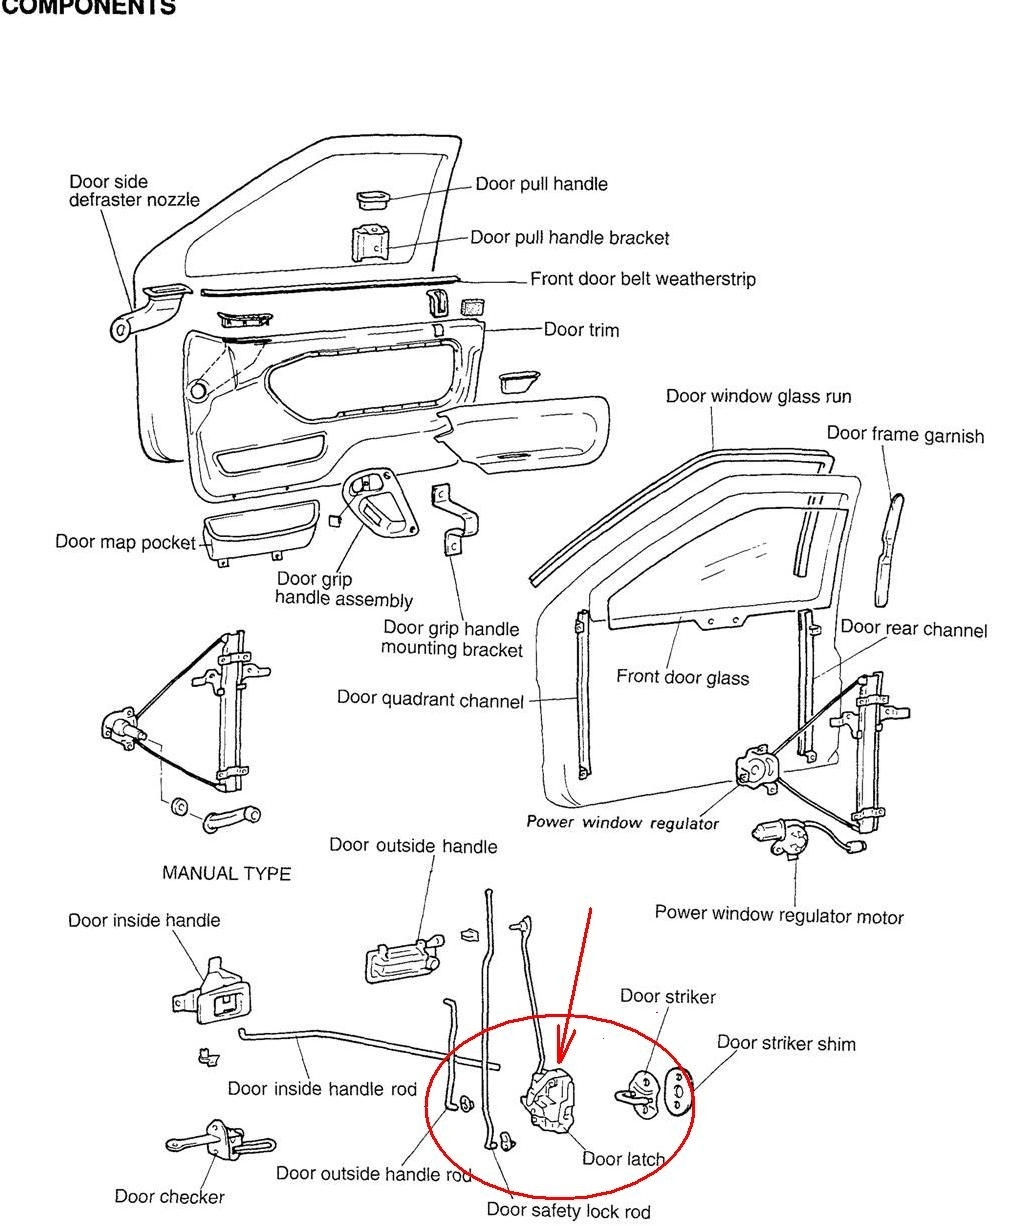 Backyards : Parts Of A Door Lock Diagram Parts Of A Door Lock inside 2002 Hyundai Santa Fe Parts Diagram